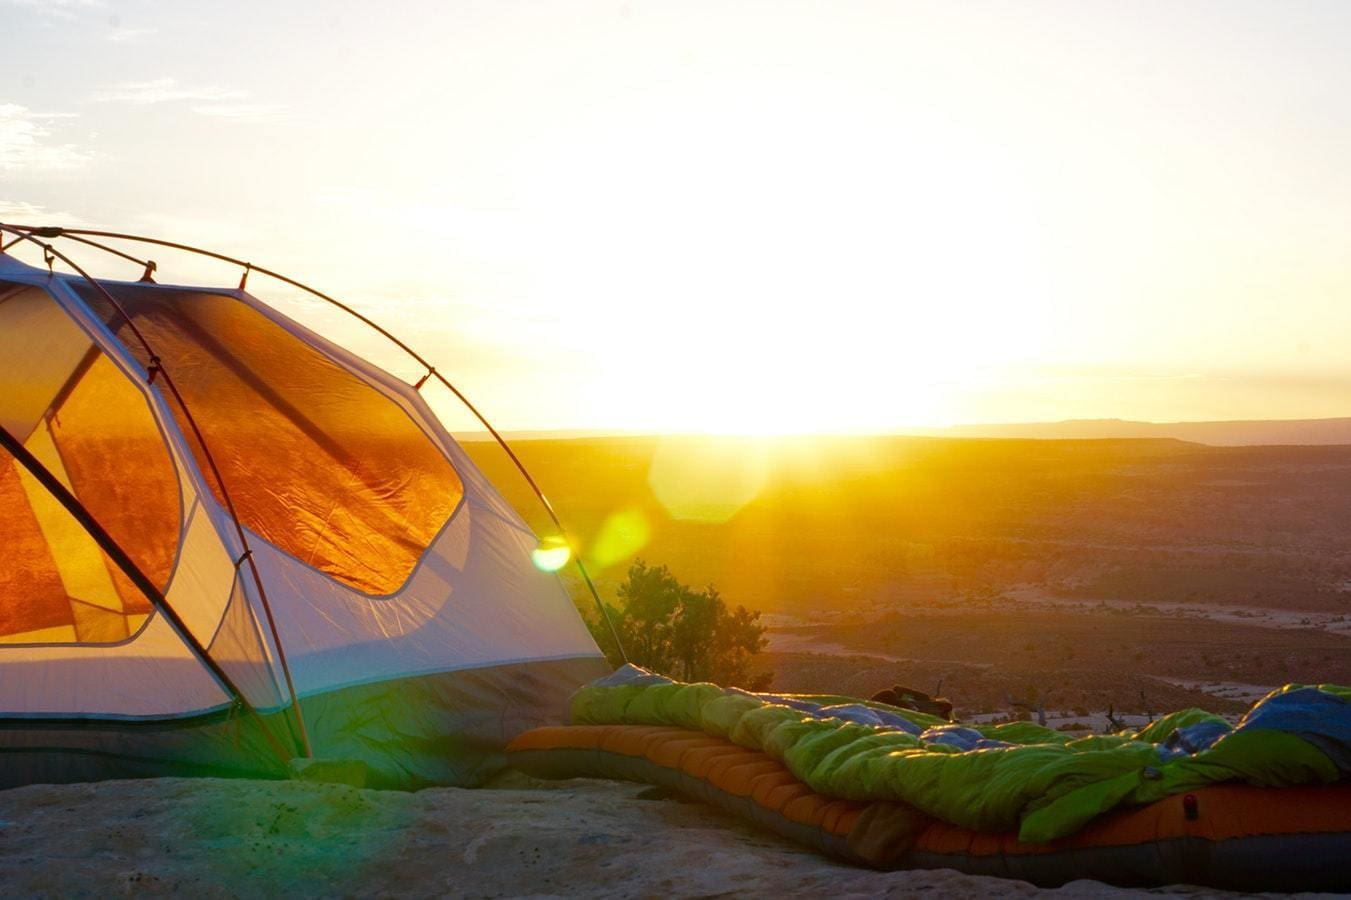 SELECTING CAMPING GEAR FOR YOUR NEXT CAMPING TRIP